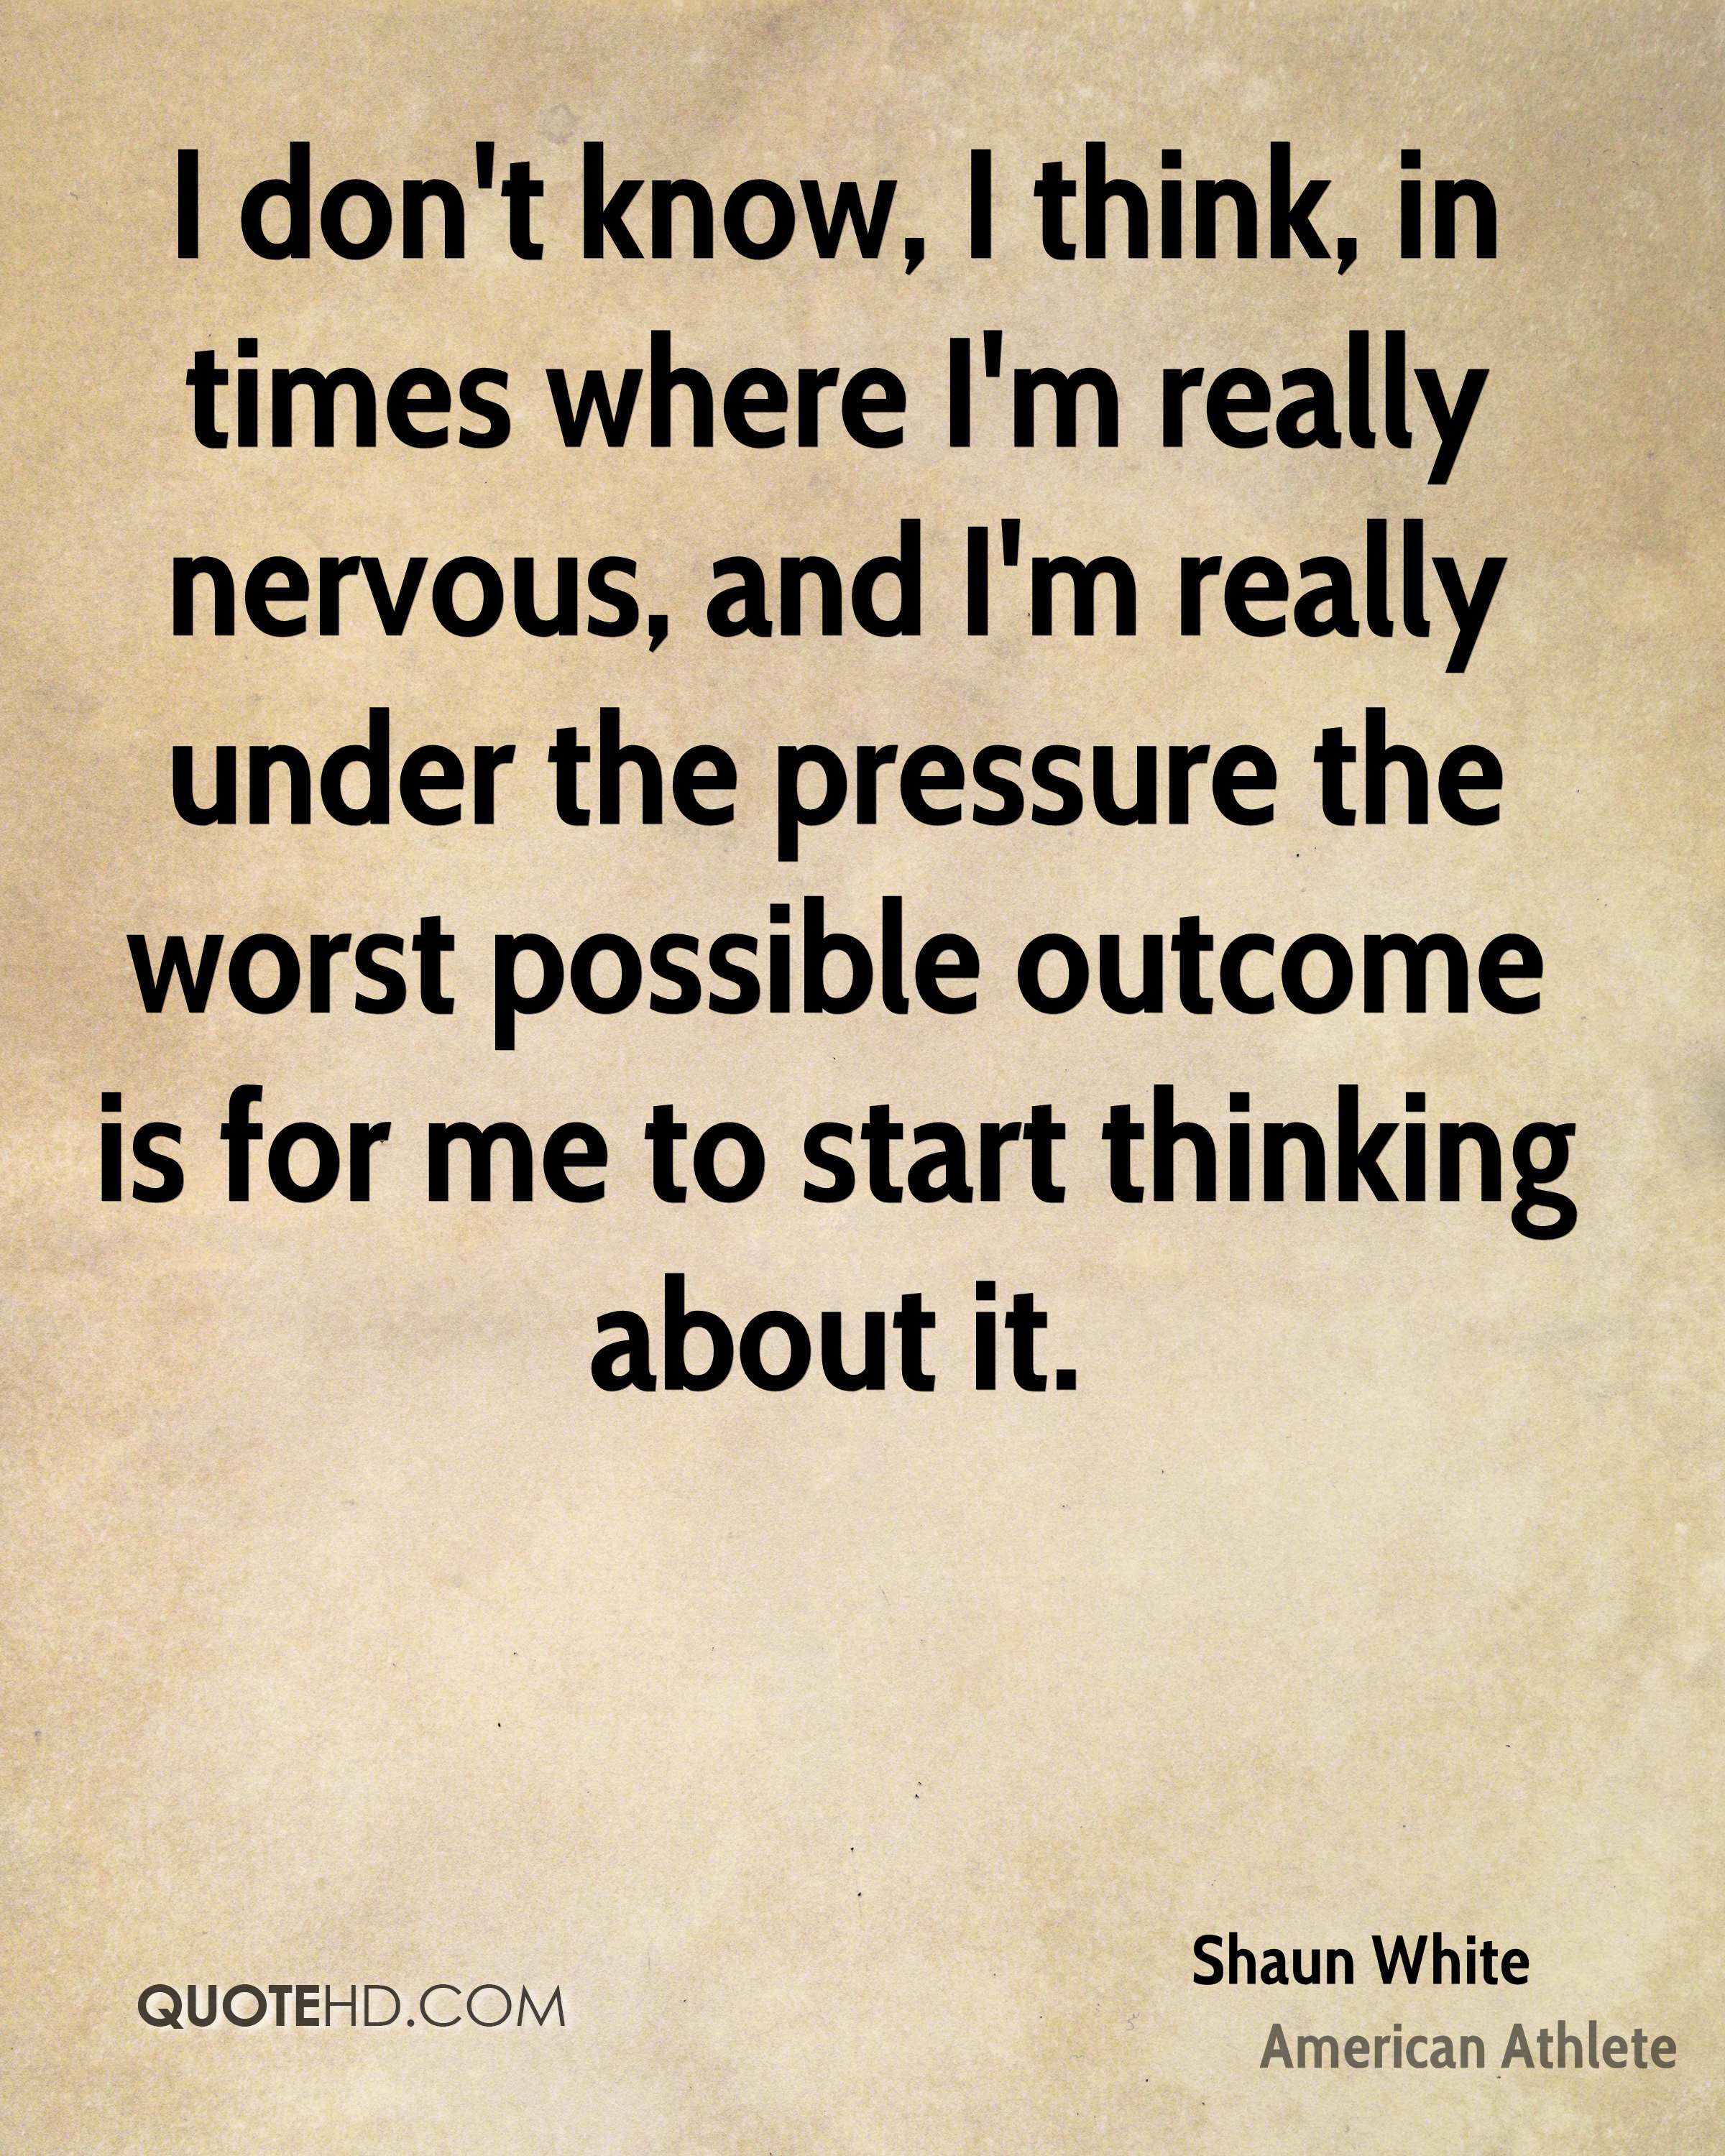 I don't know, I think, in times where I'm really nervous, and I'm really under the pressure the worst possible outcome is for me to start thinking about it.